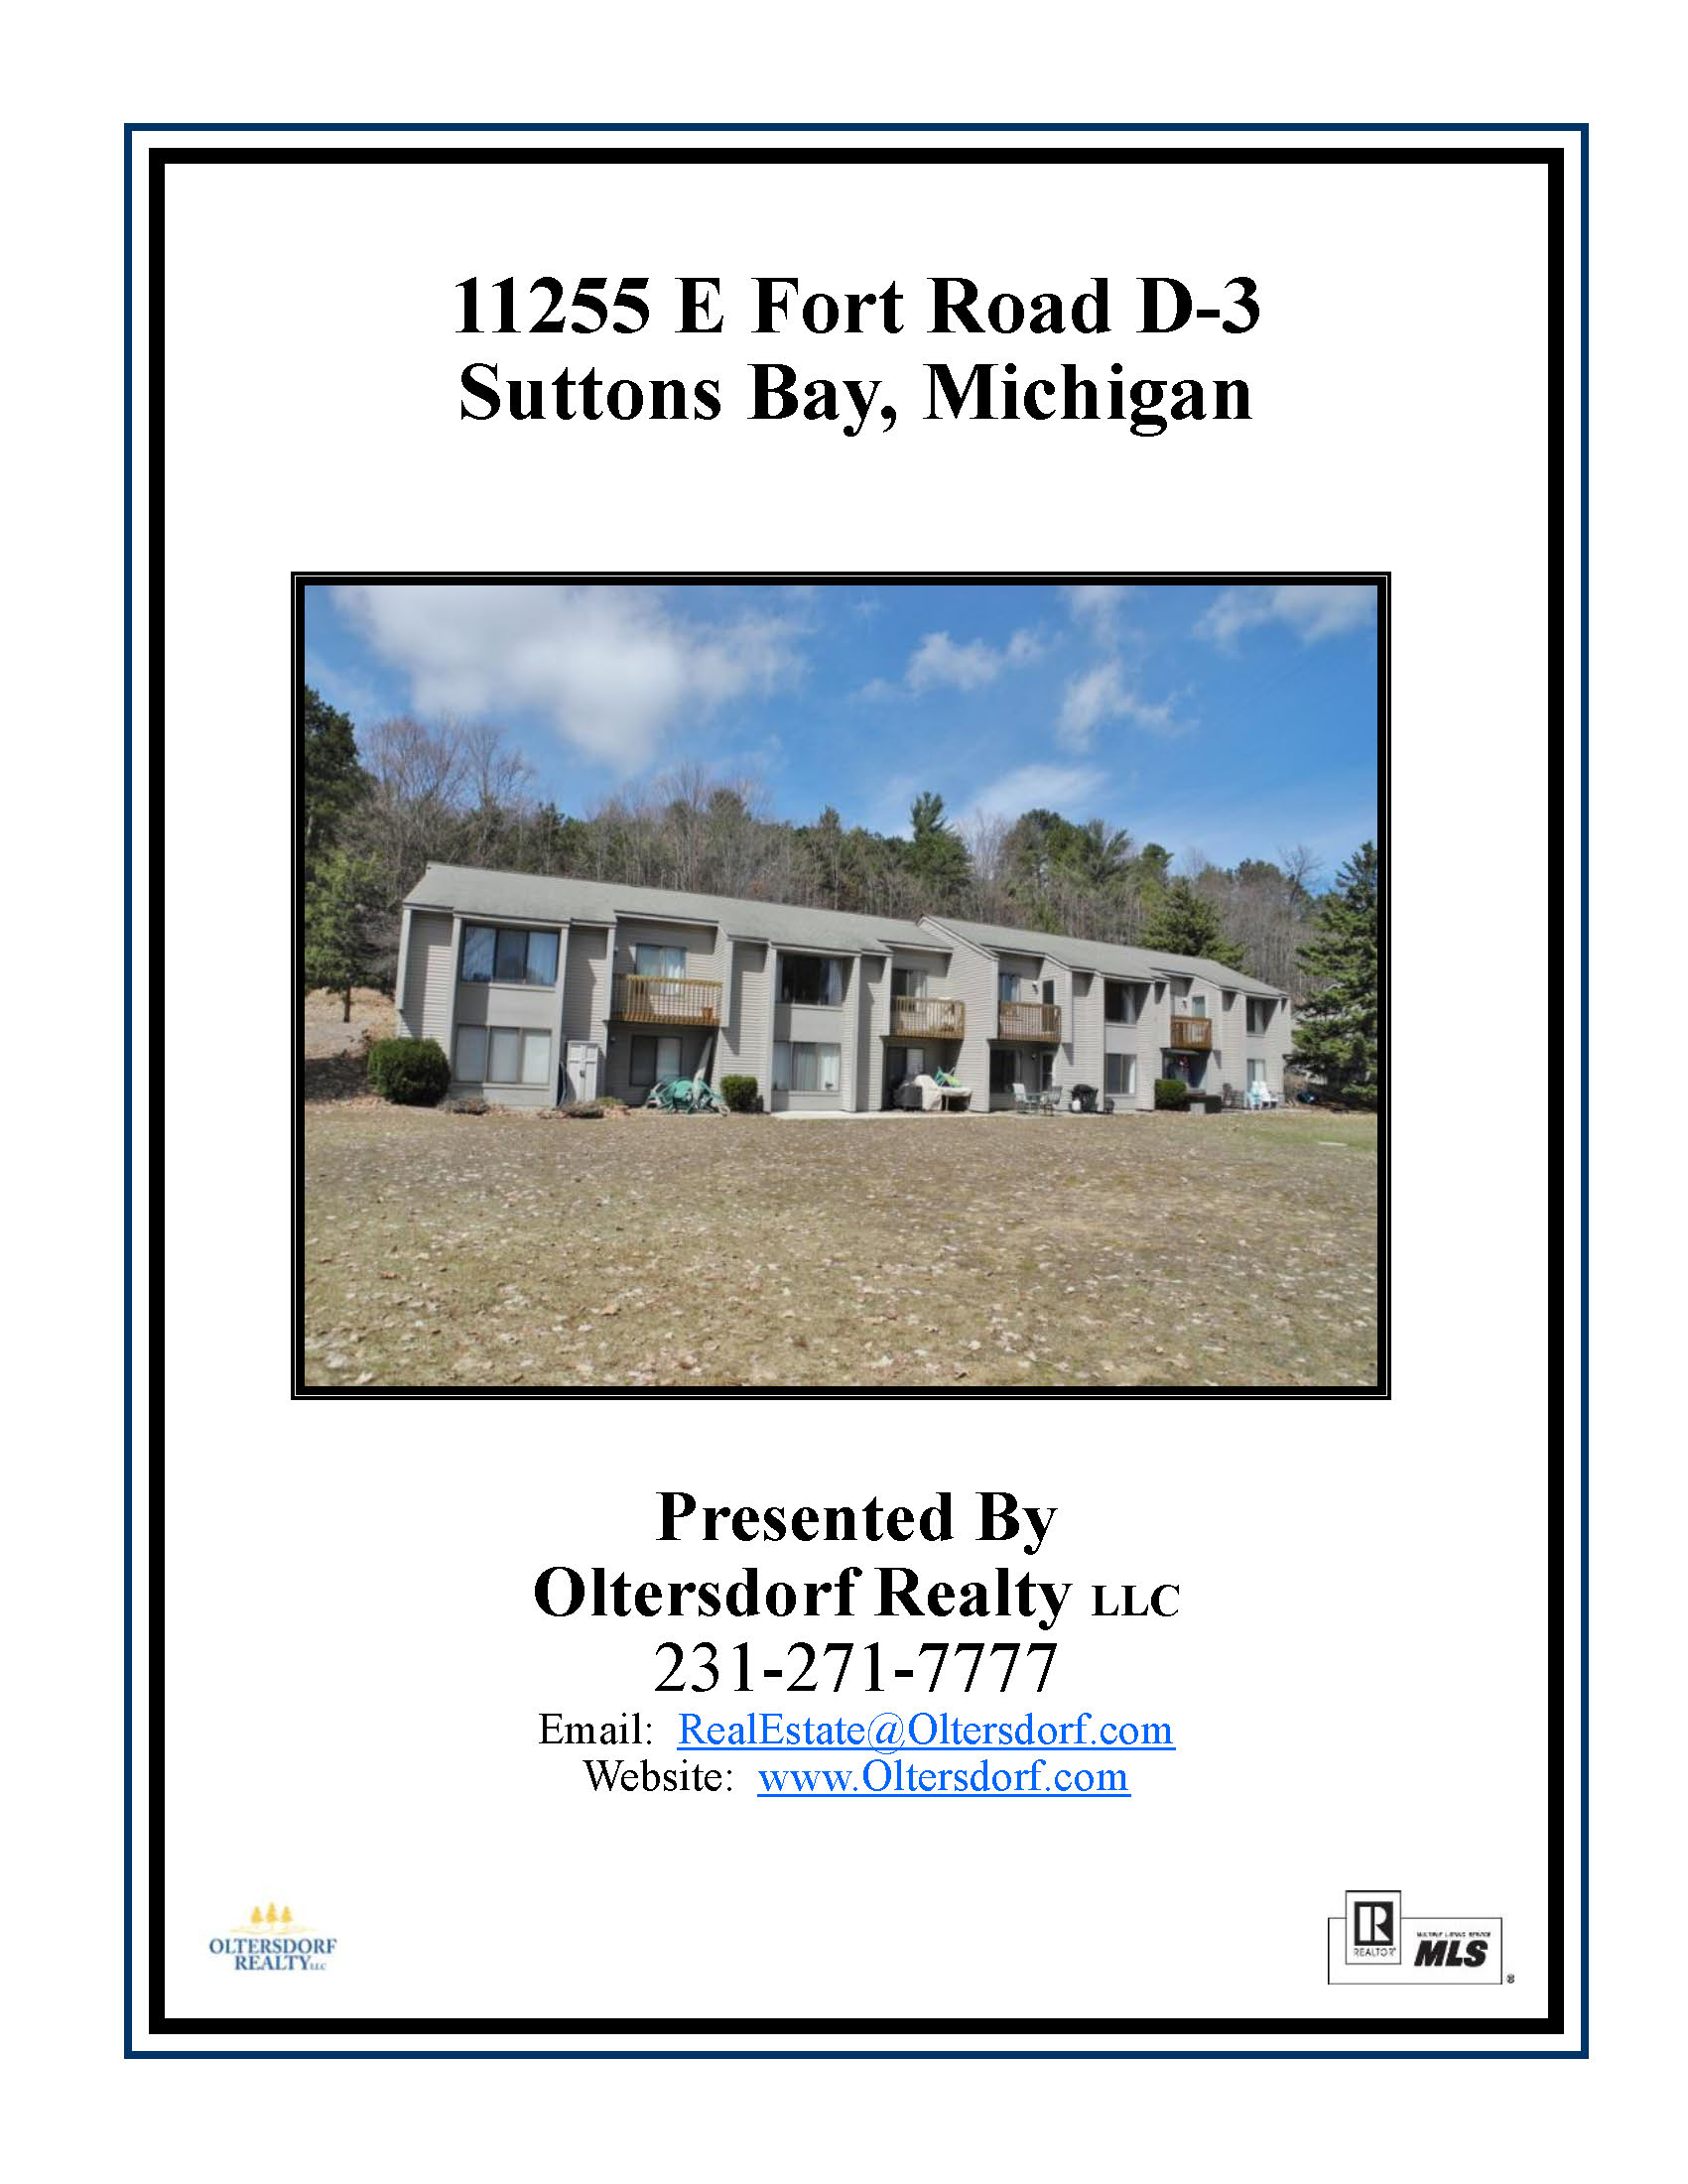 11255 E Fort Road Marketing Packet, Suttons Bay - for Sale by Oltersdorf Realty LLC (1).jpg